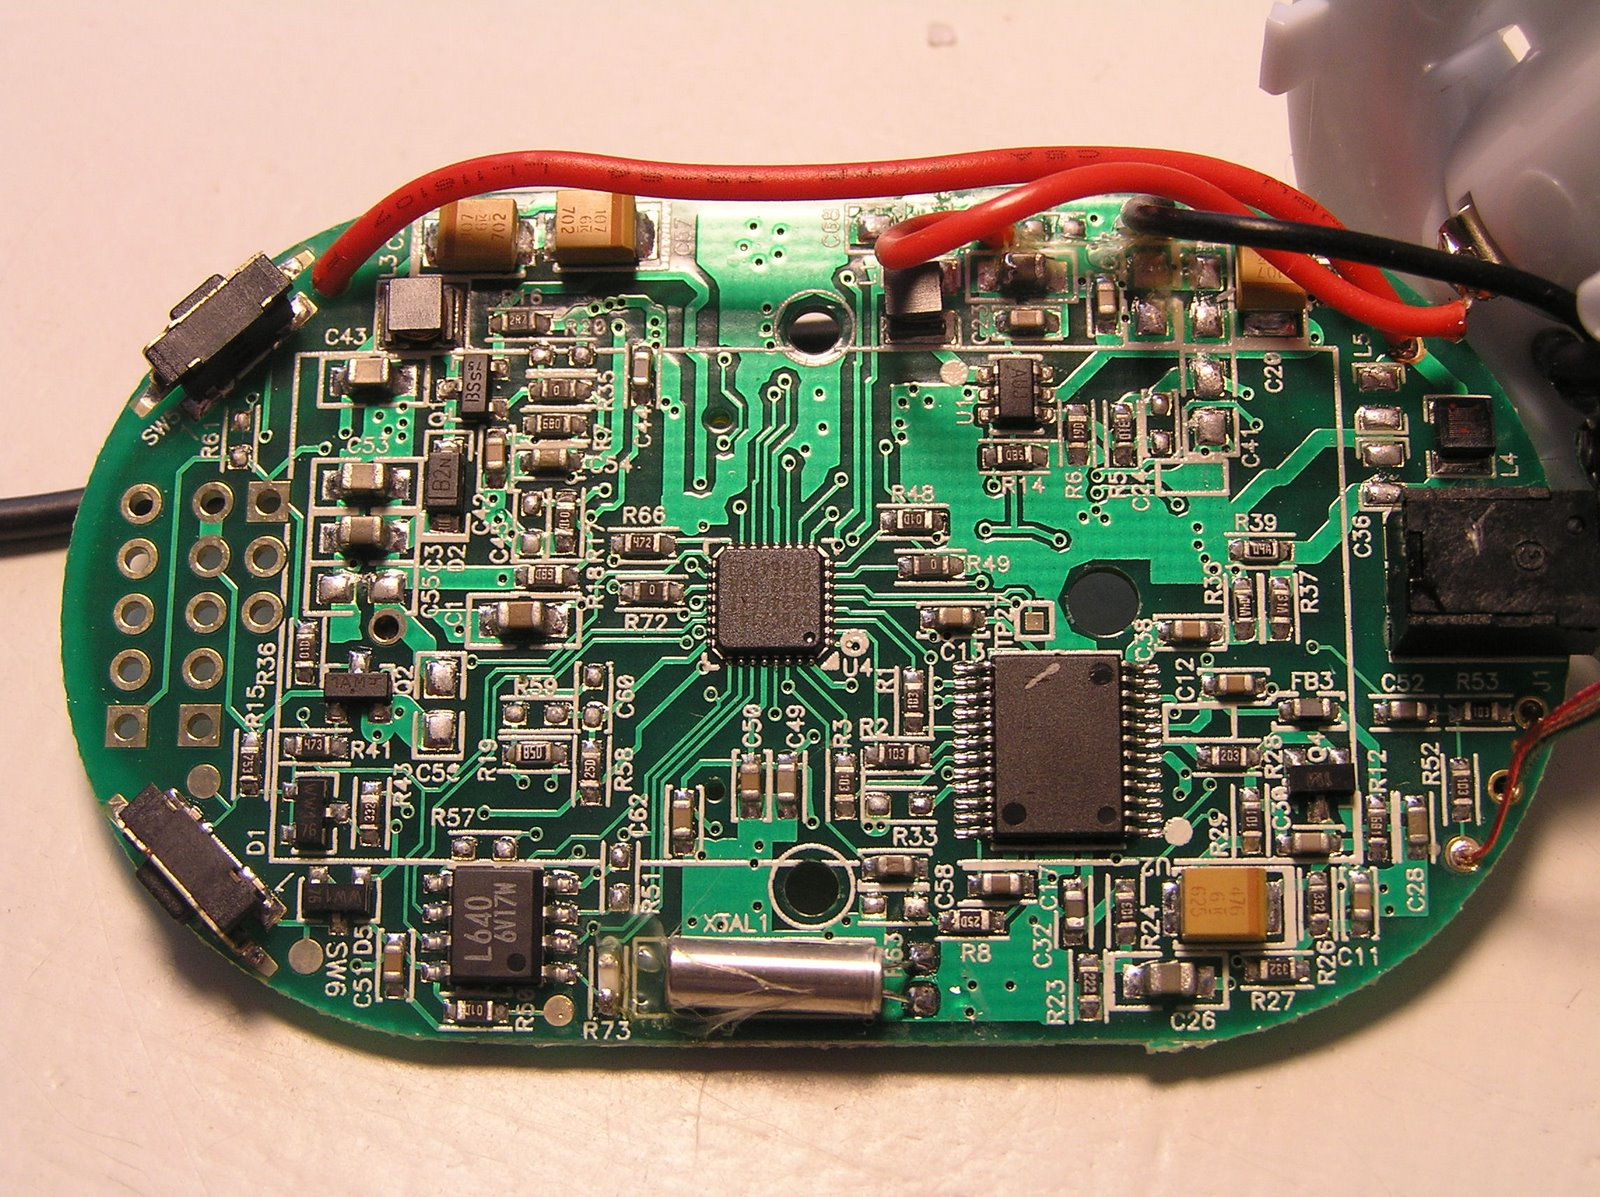 Arduino Led Matrix moreover Conversion Of Cheap Optical Mouse To further Showthread also Simple Belkin Tunecast 3 Mod To Boost moreover Can This Avr Mcu With 5v I2c Work With This Sensor With 3 3v I2c. on one s circuit schematic